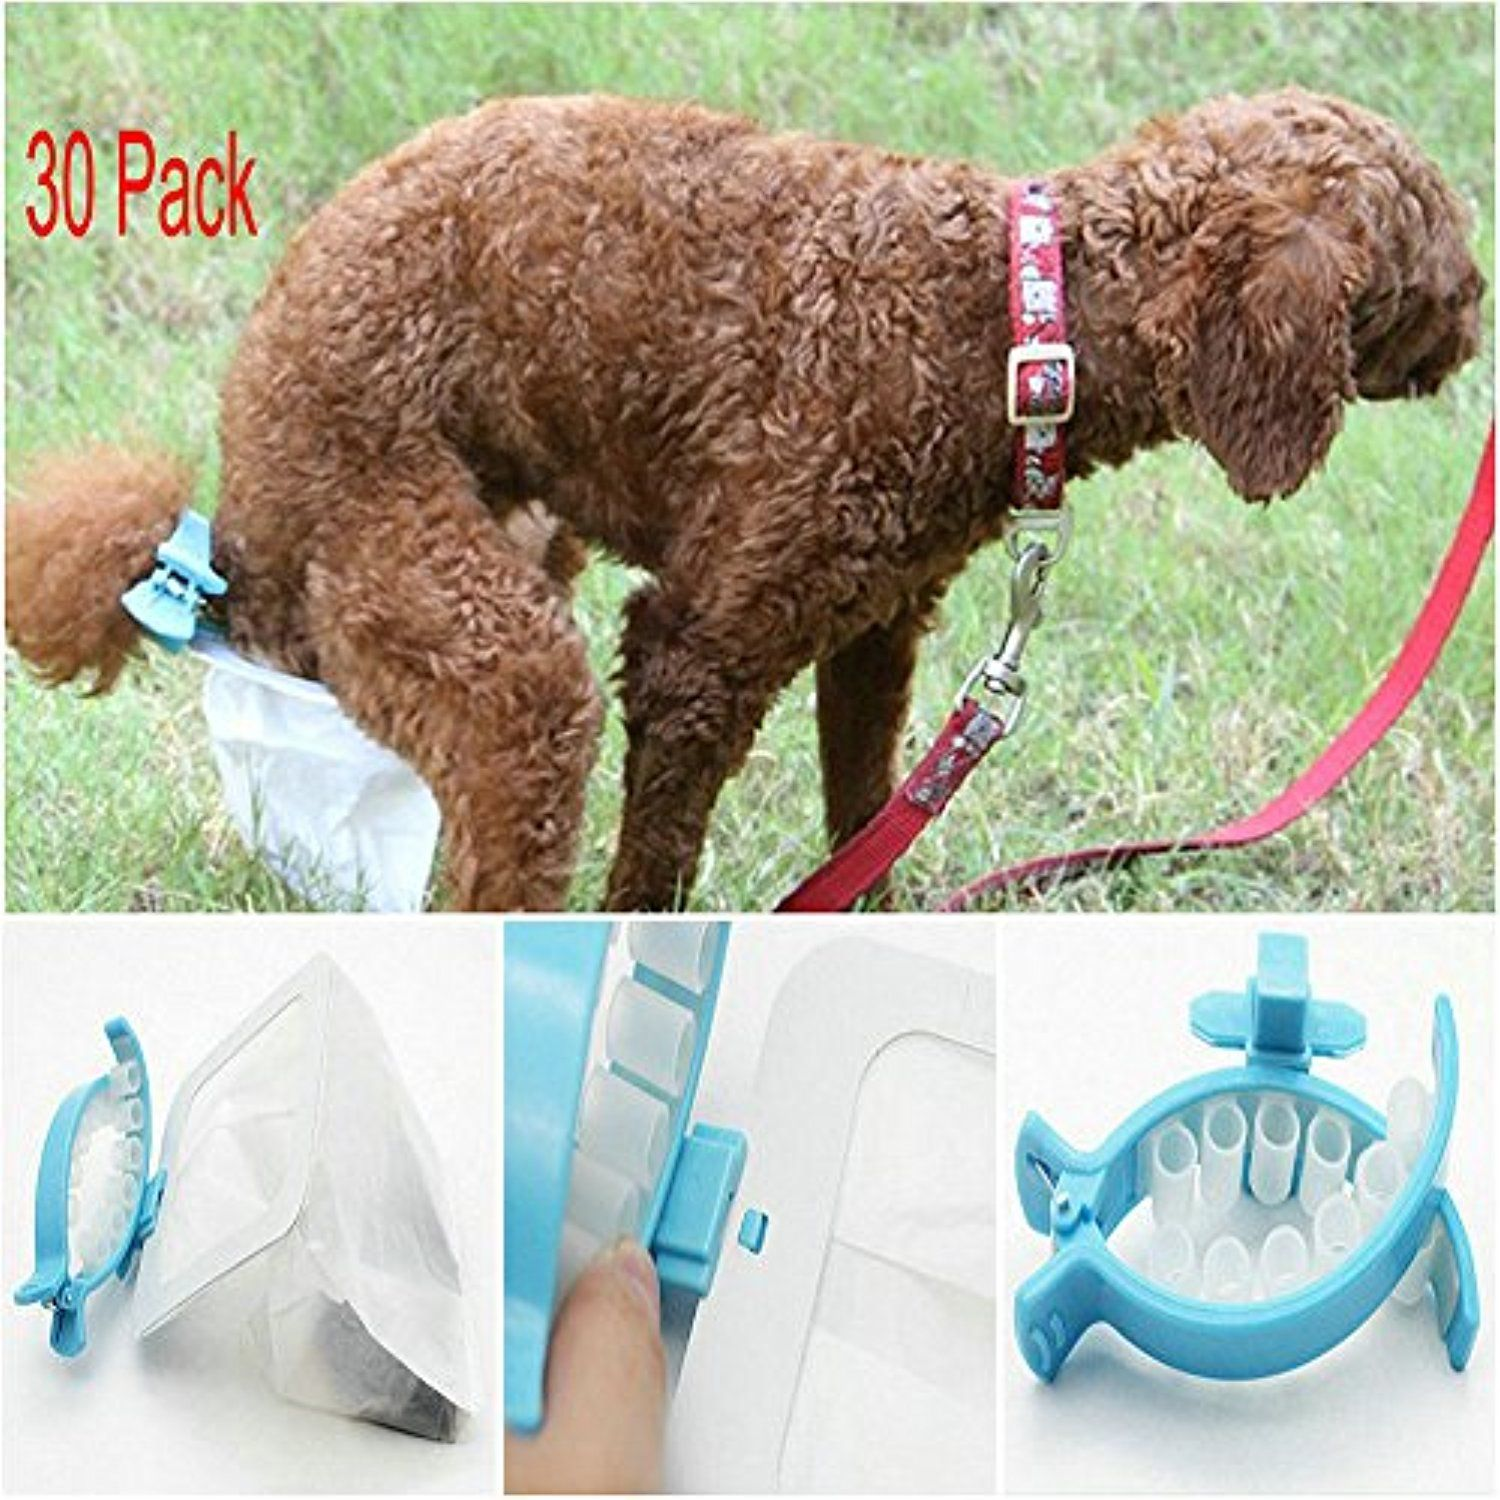 d0f0433904 Hand Free Dog Poo Collector Before Dog Poop Landing Wearable Nylon Bag  Container with Soft Clip Avoid Stool Anywhere (30pcs Bags size L)    For  more ...